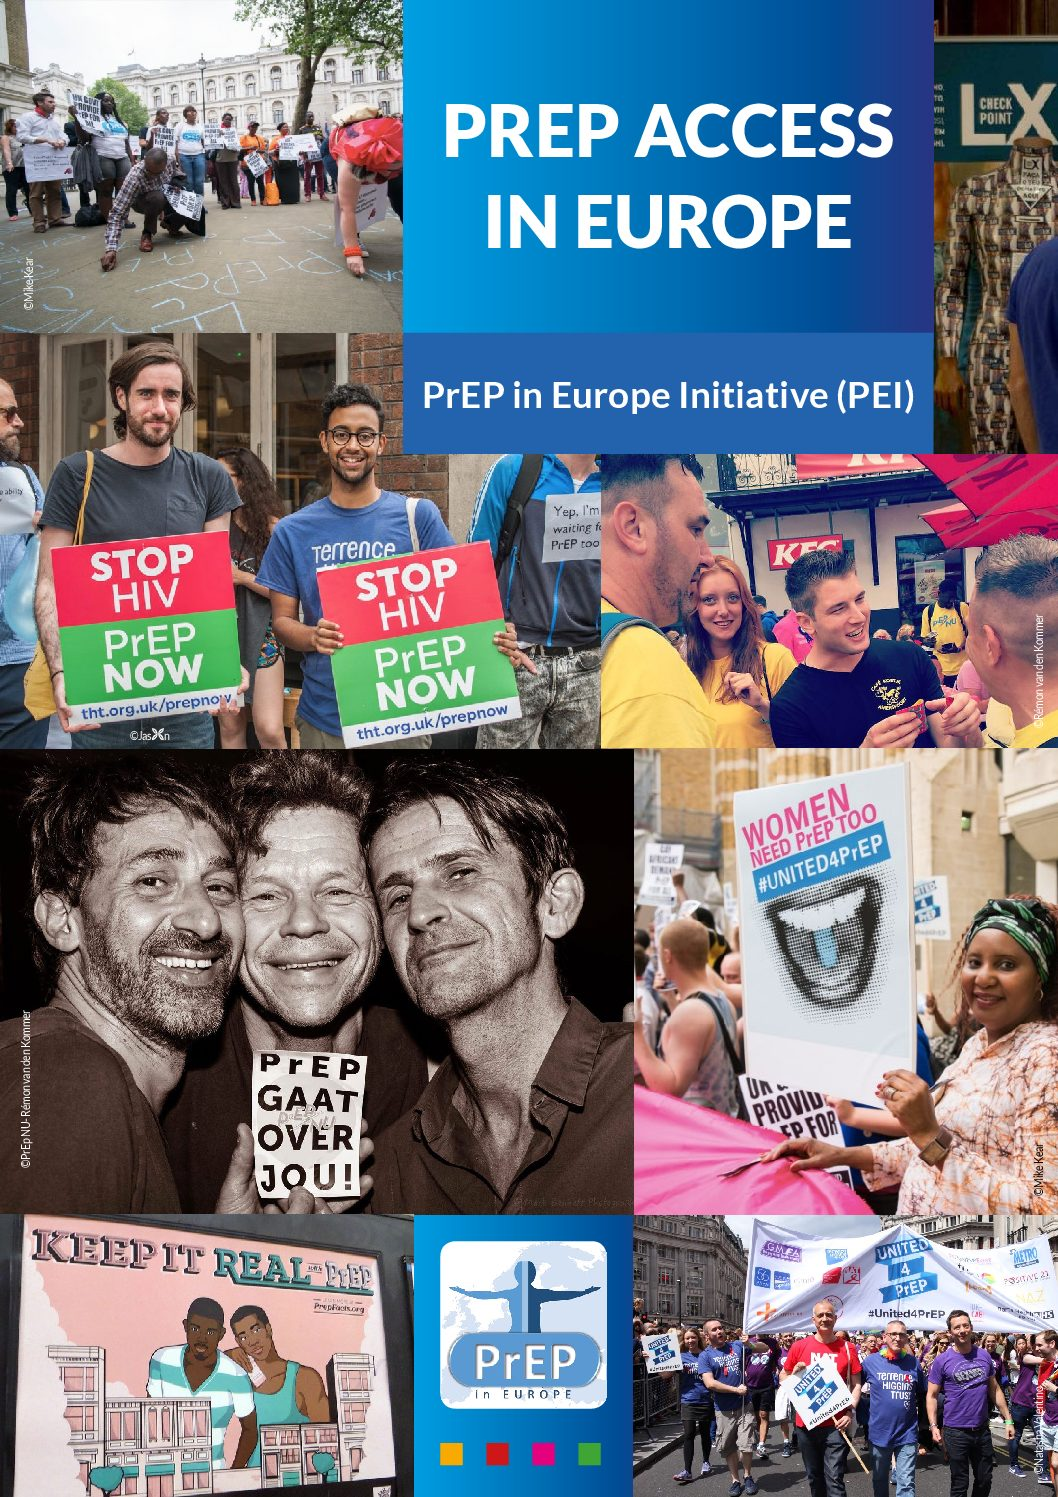 PrEP Access in Europe 2017. PrEP in Europe Initiative (PEI)